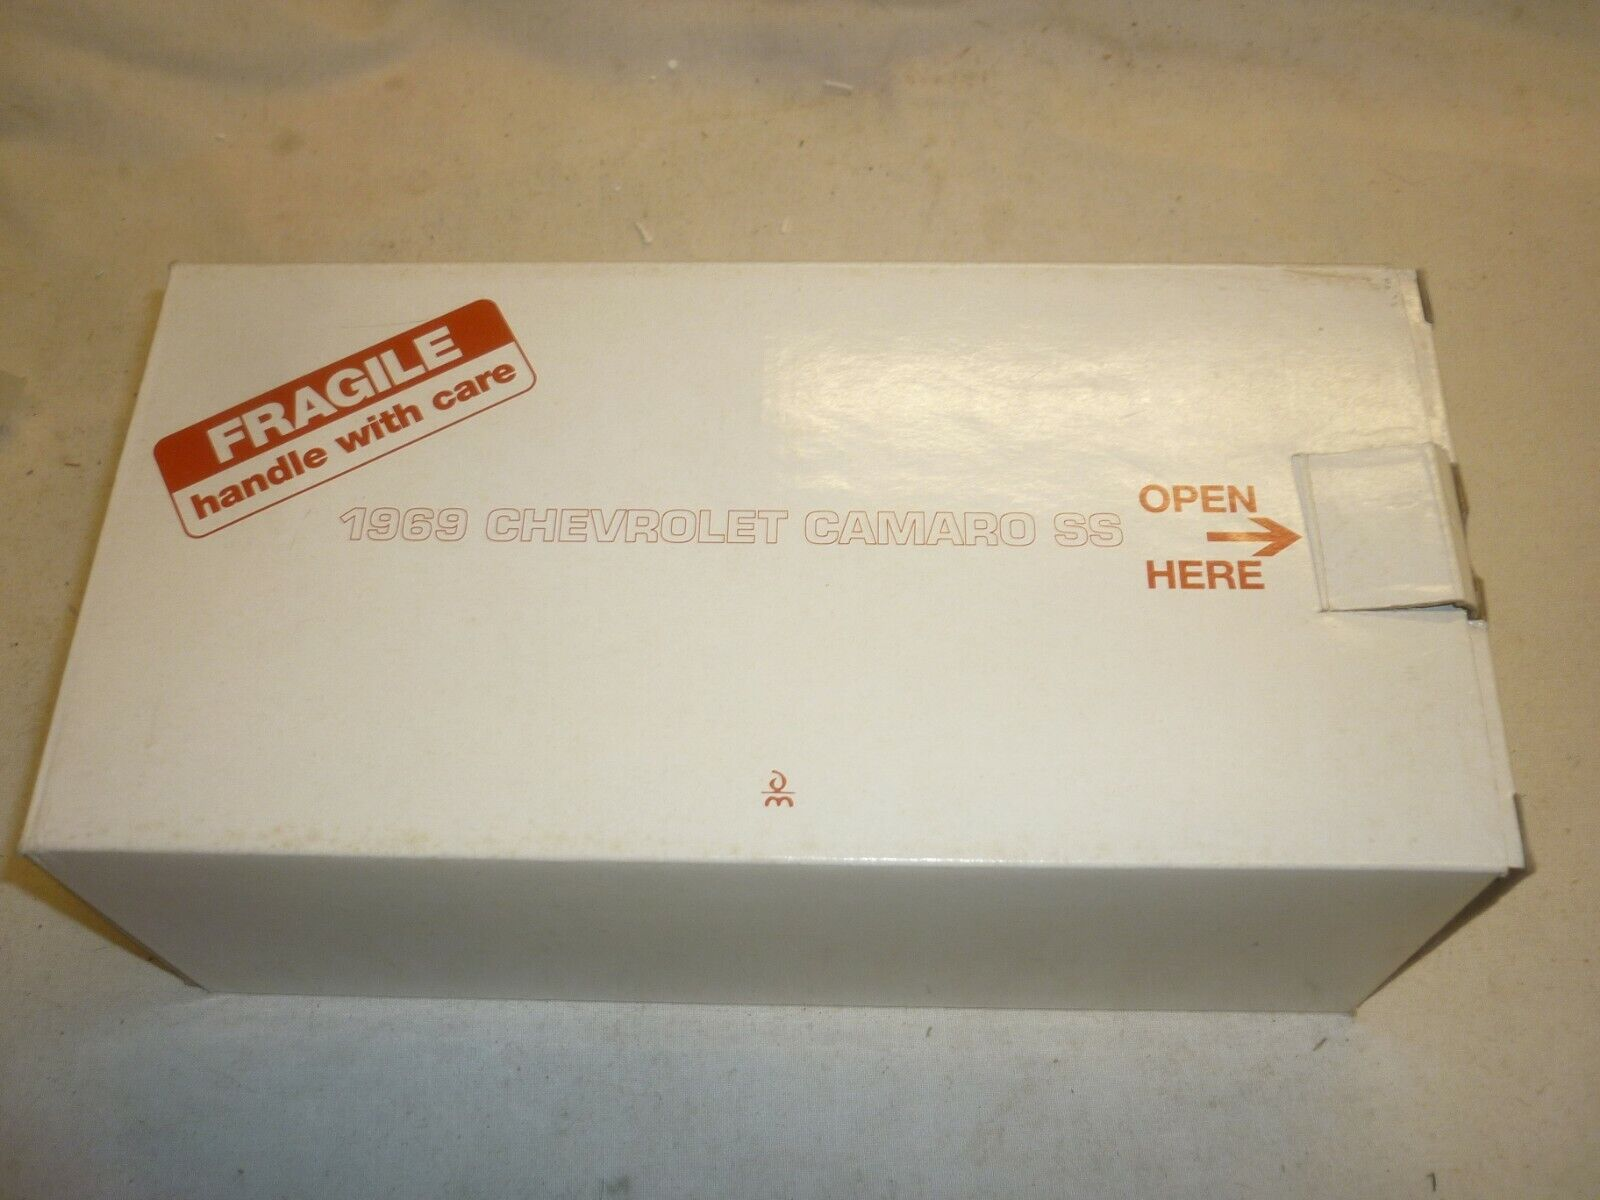 A Danbury mint model of a 1969 Chevrolet Cameo ss, boxed